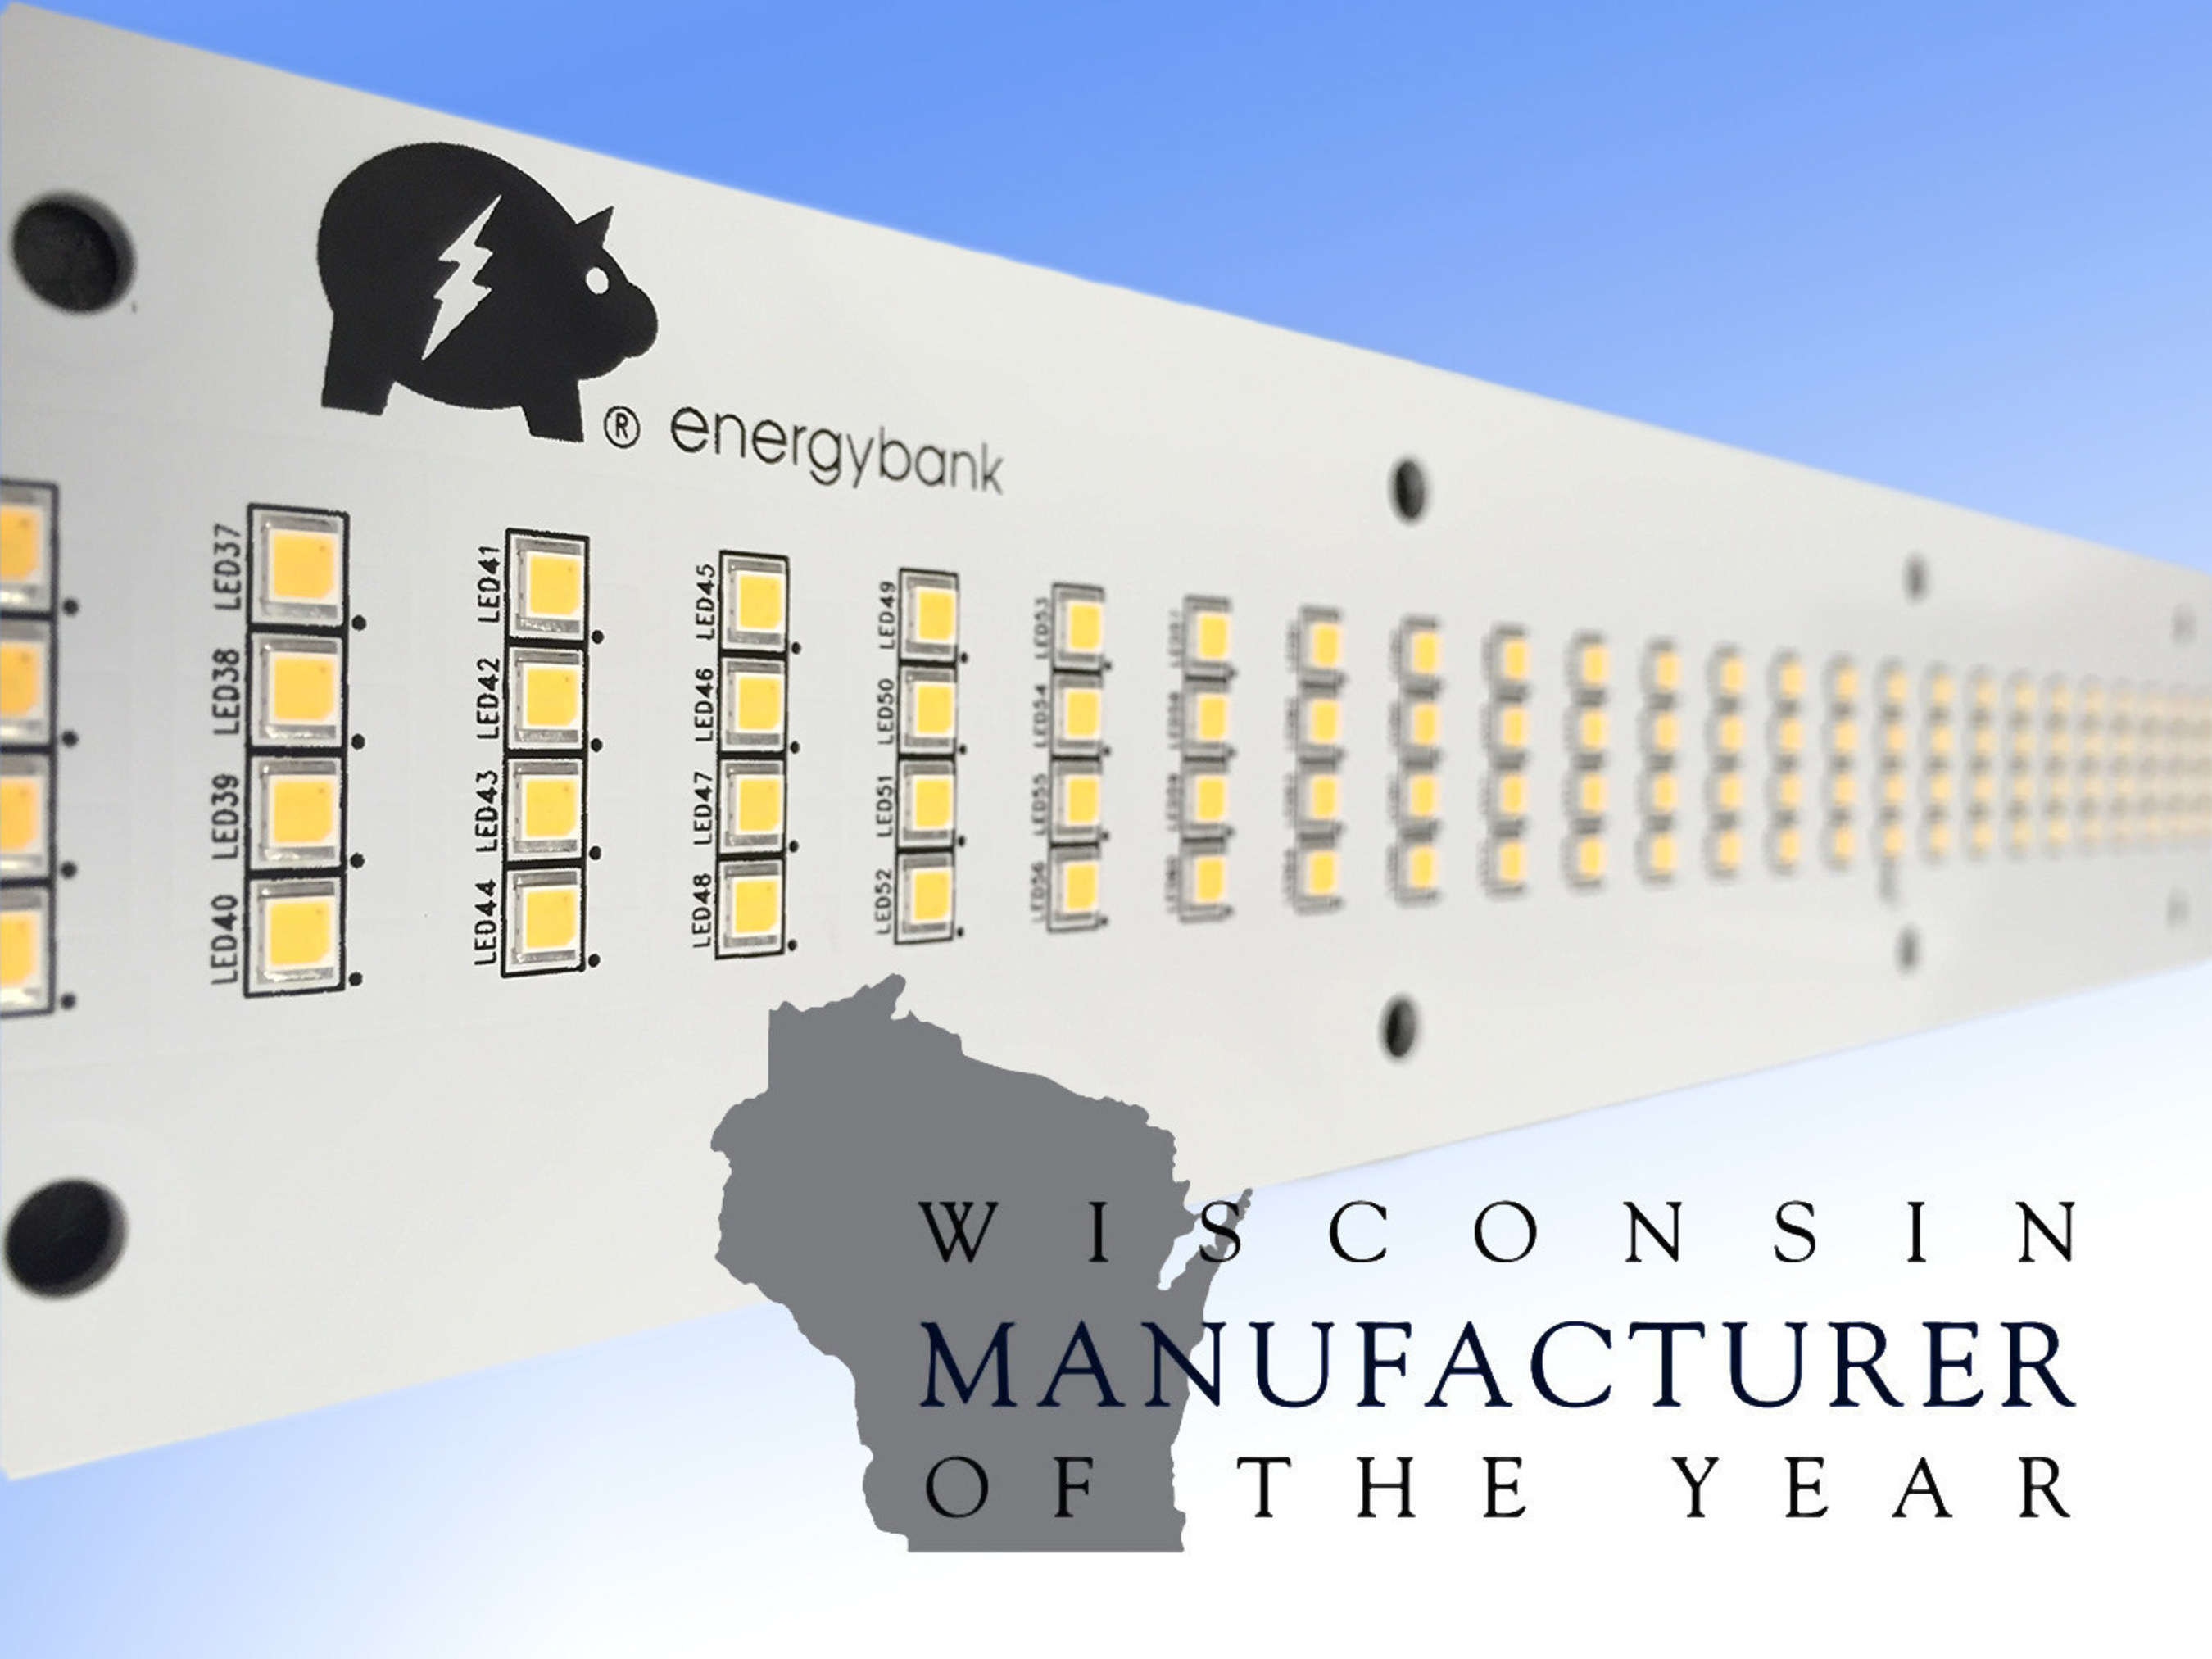 energybank nominated for Wisconsin Manufacturer of the Year Award. Founder & CEO Neal Verfuerth has won 3 times previously. http://www.energybankinc.com